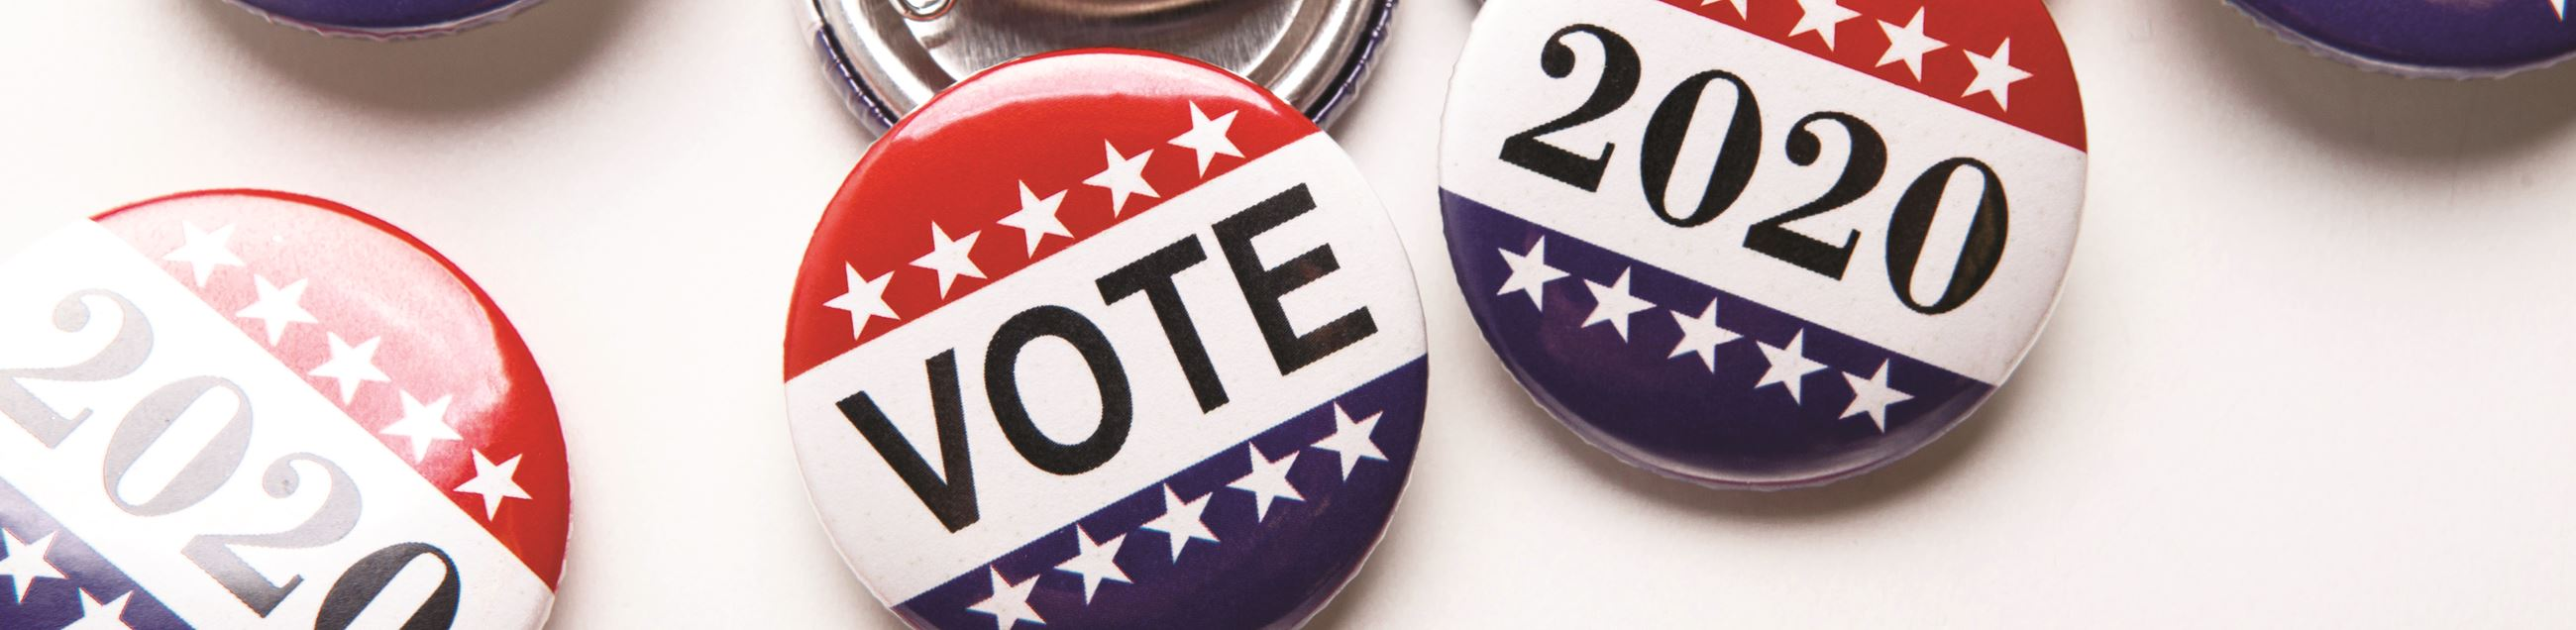 Click here to find important MBTS election information!